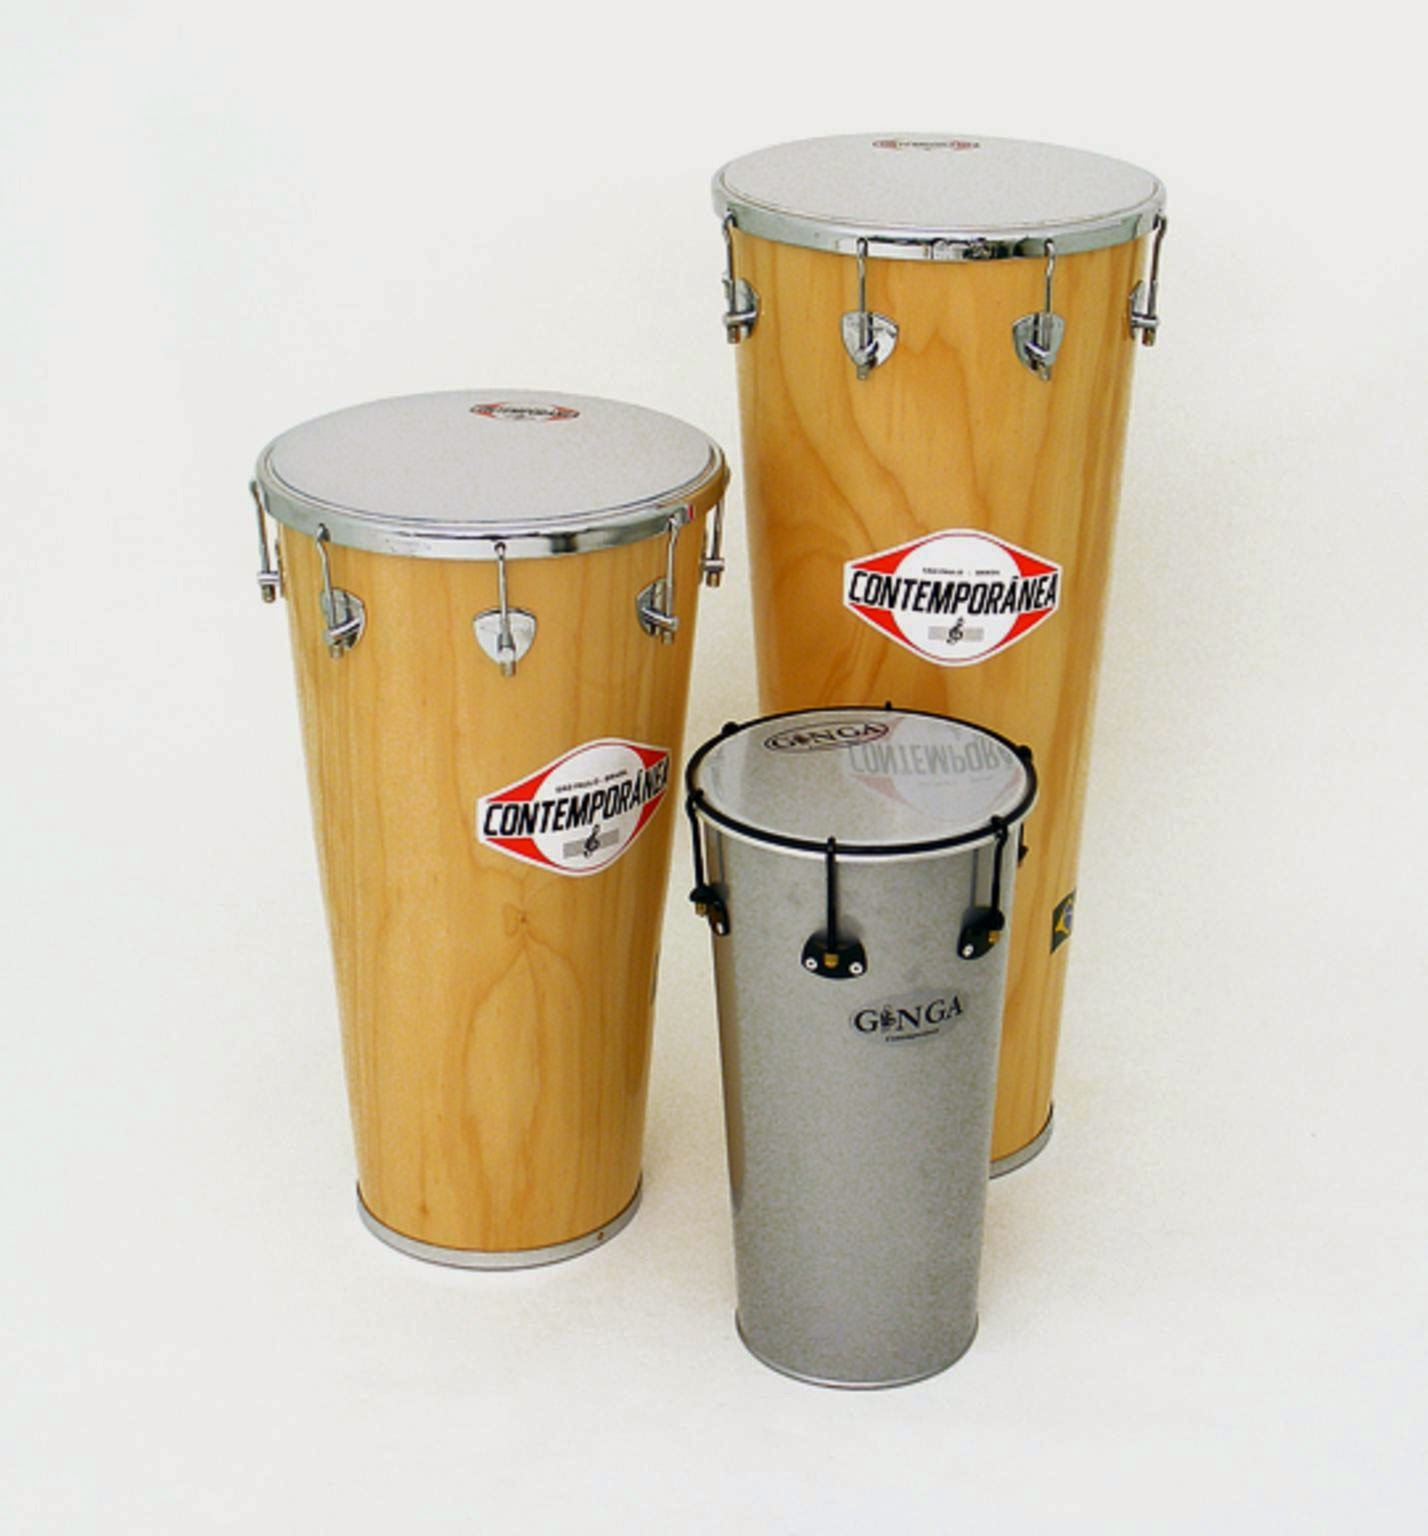 Timbau patterns and phrases - Brazilian percussion blog